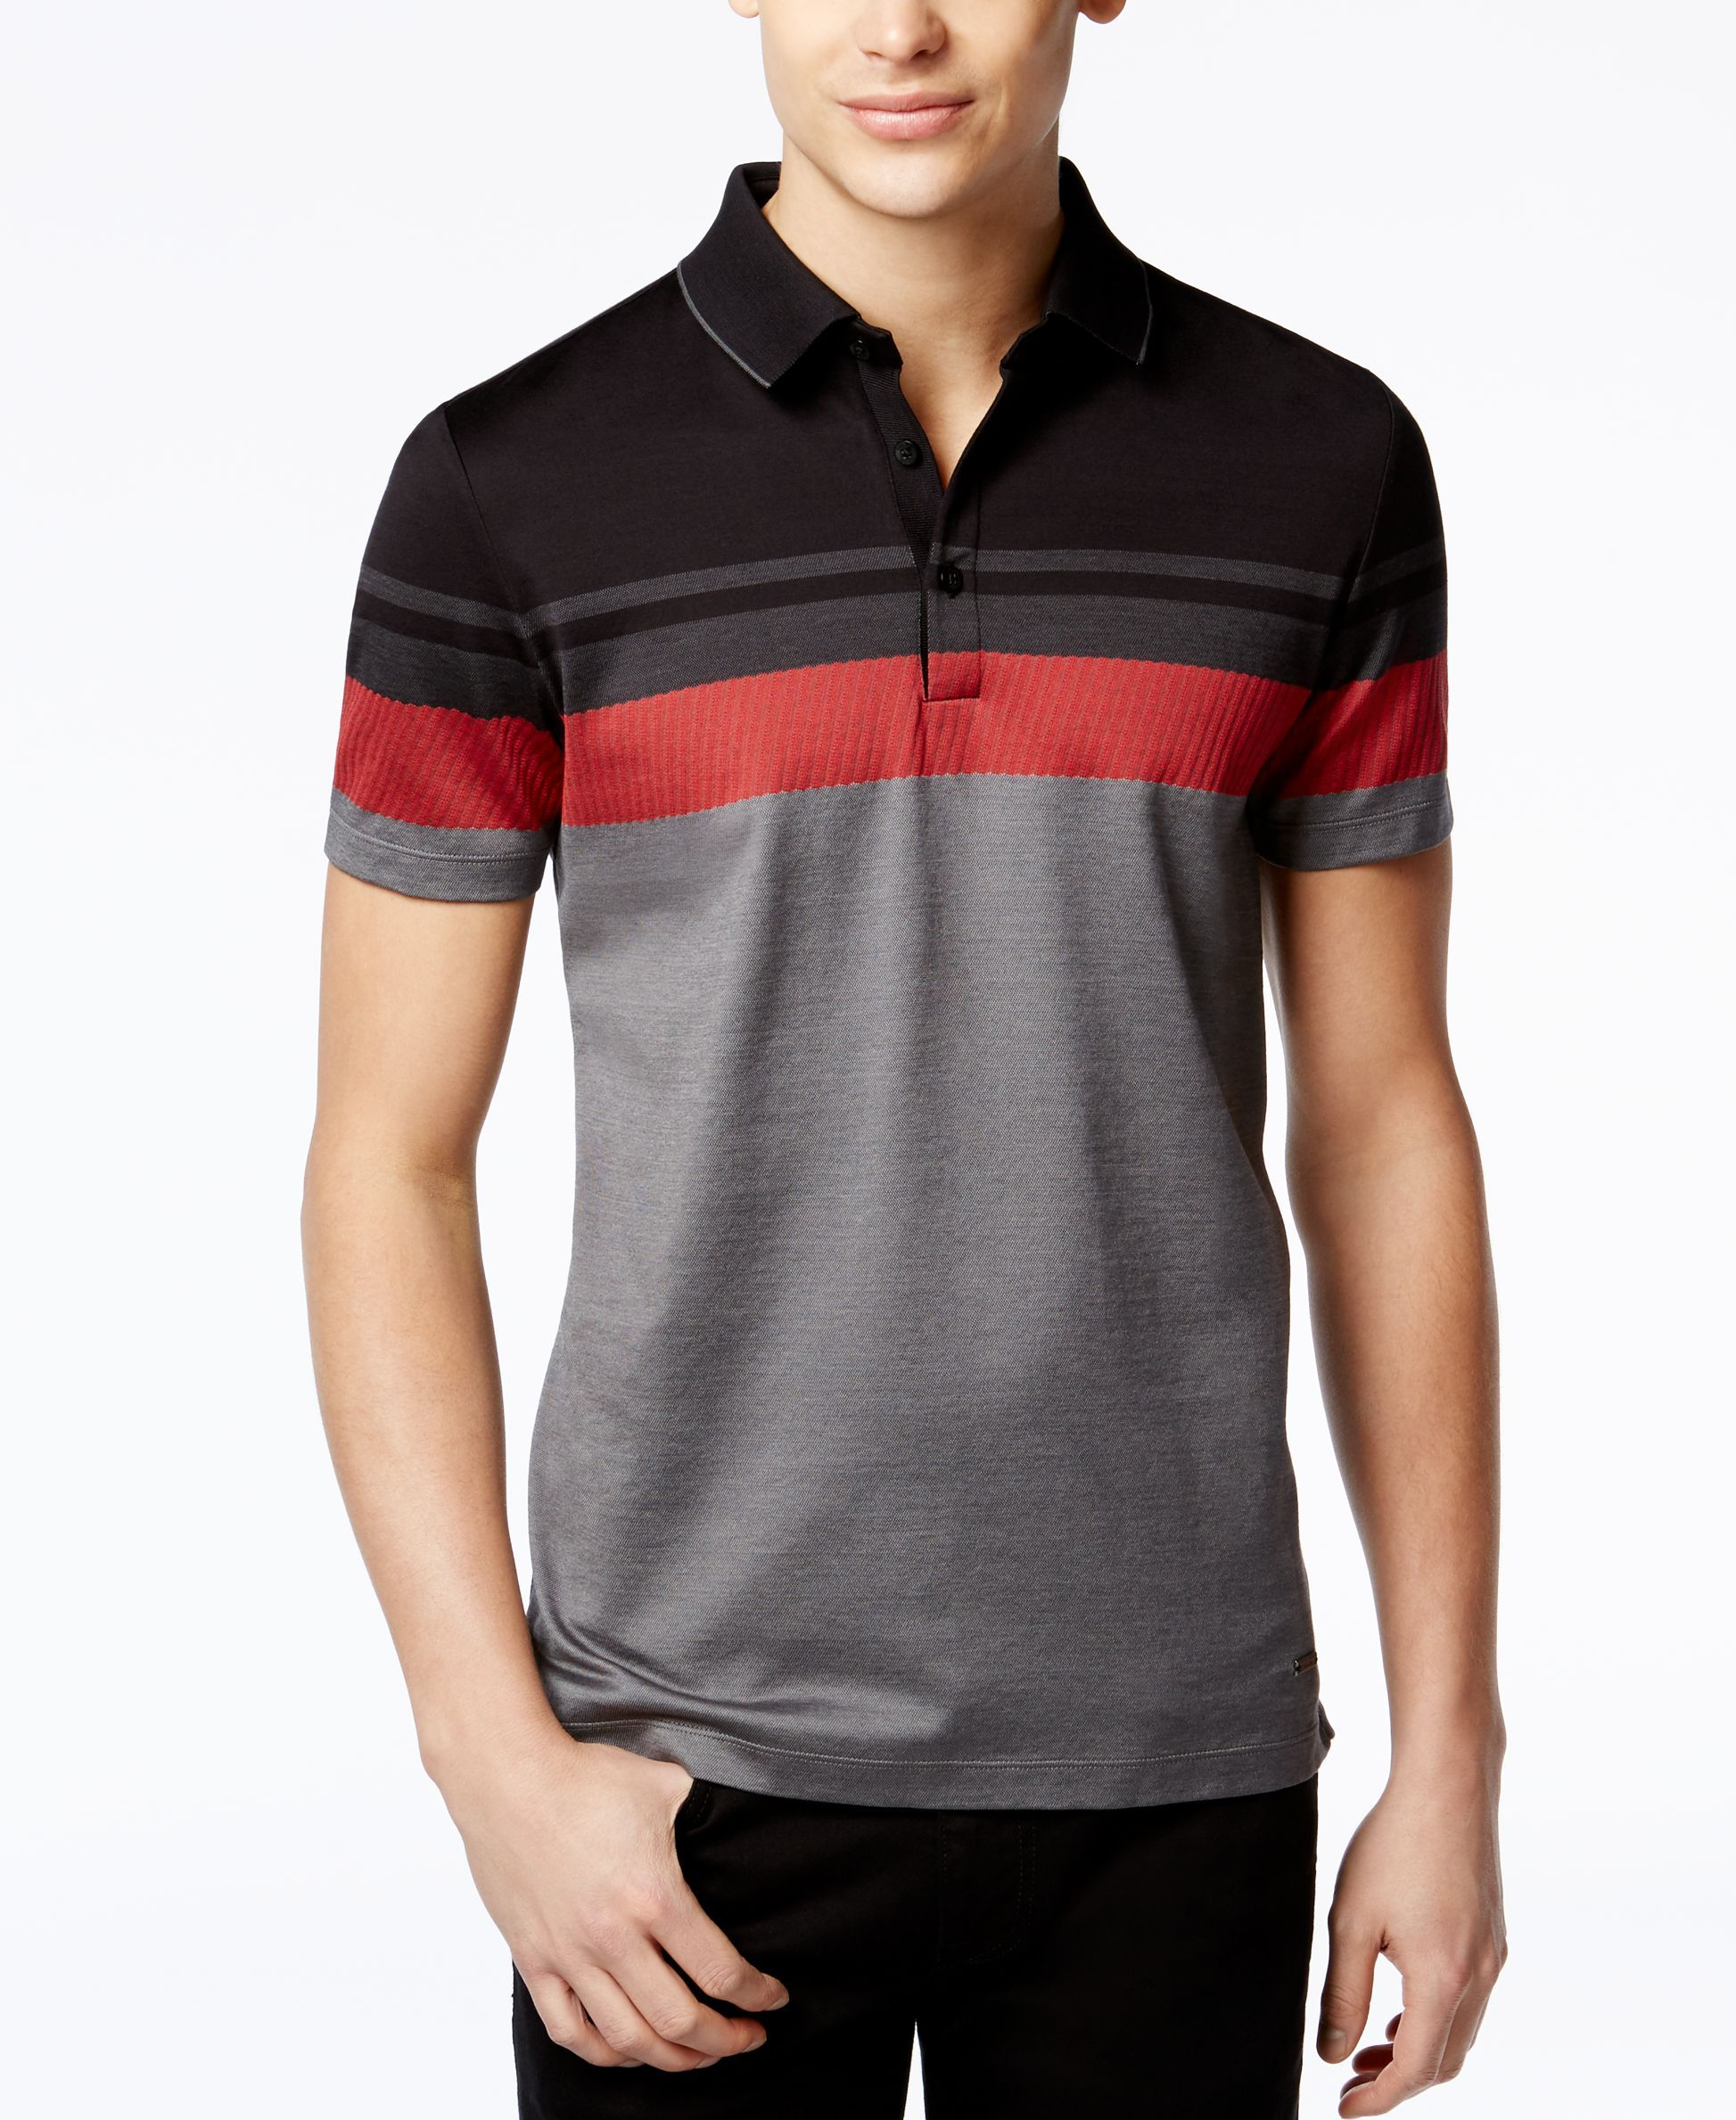 Best Designer Polo Shirts  Calvin Klein. Premium Colorblocked Polo Shirt  4417a0041ce7a